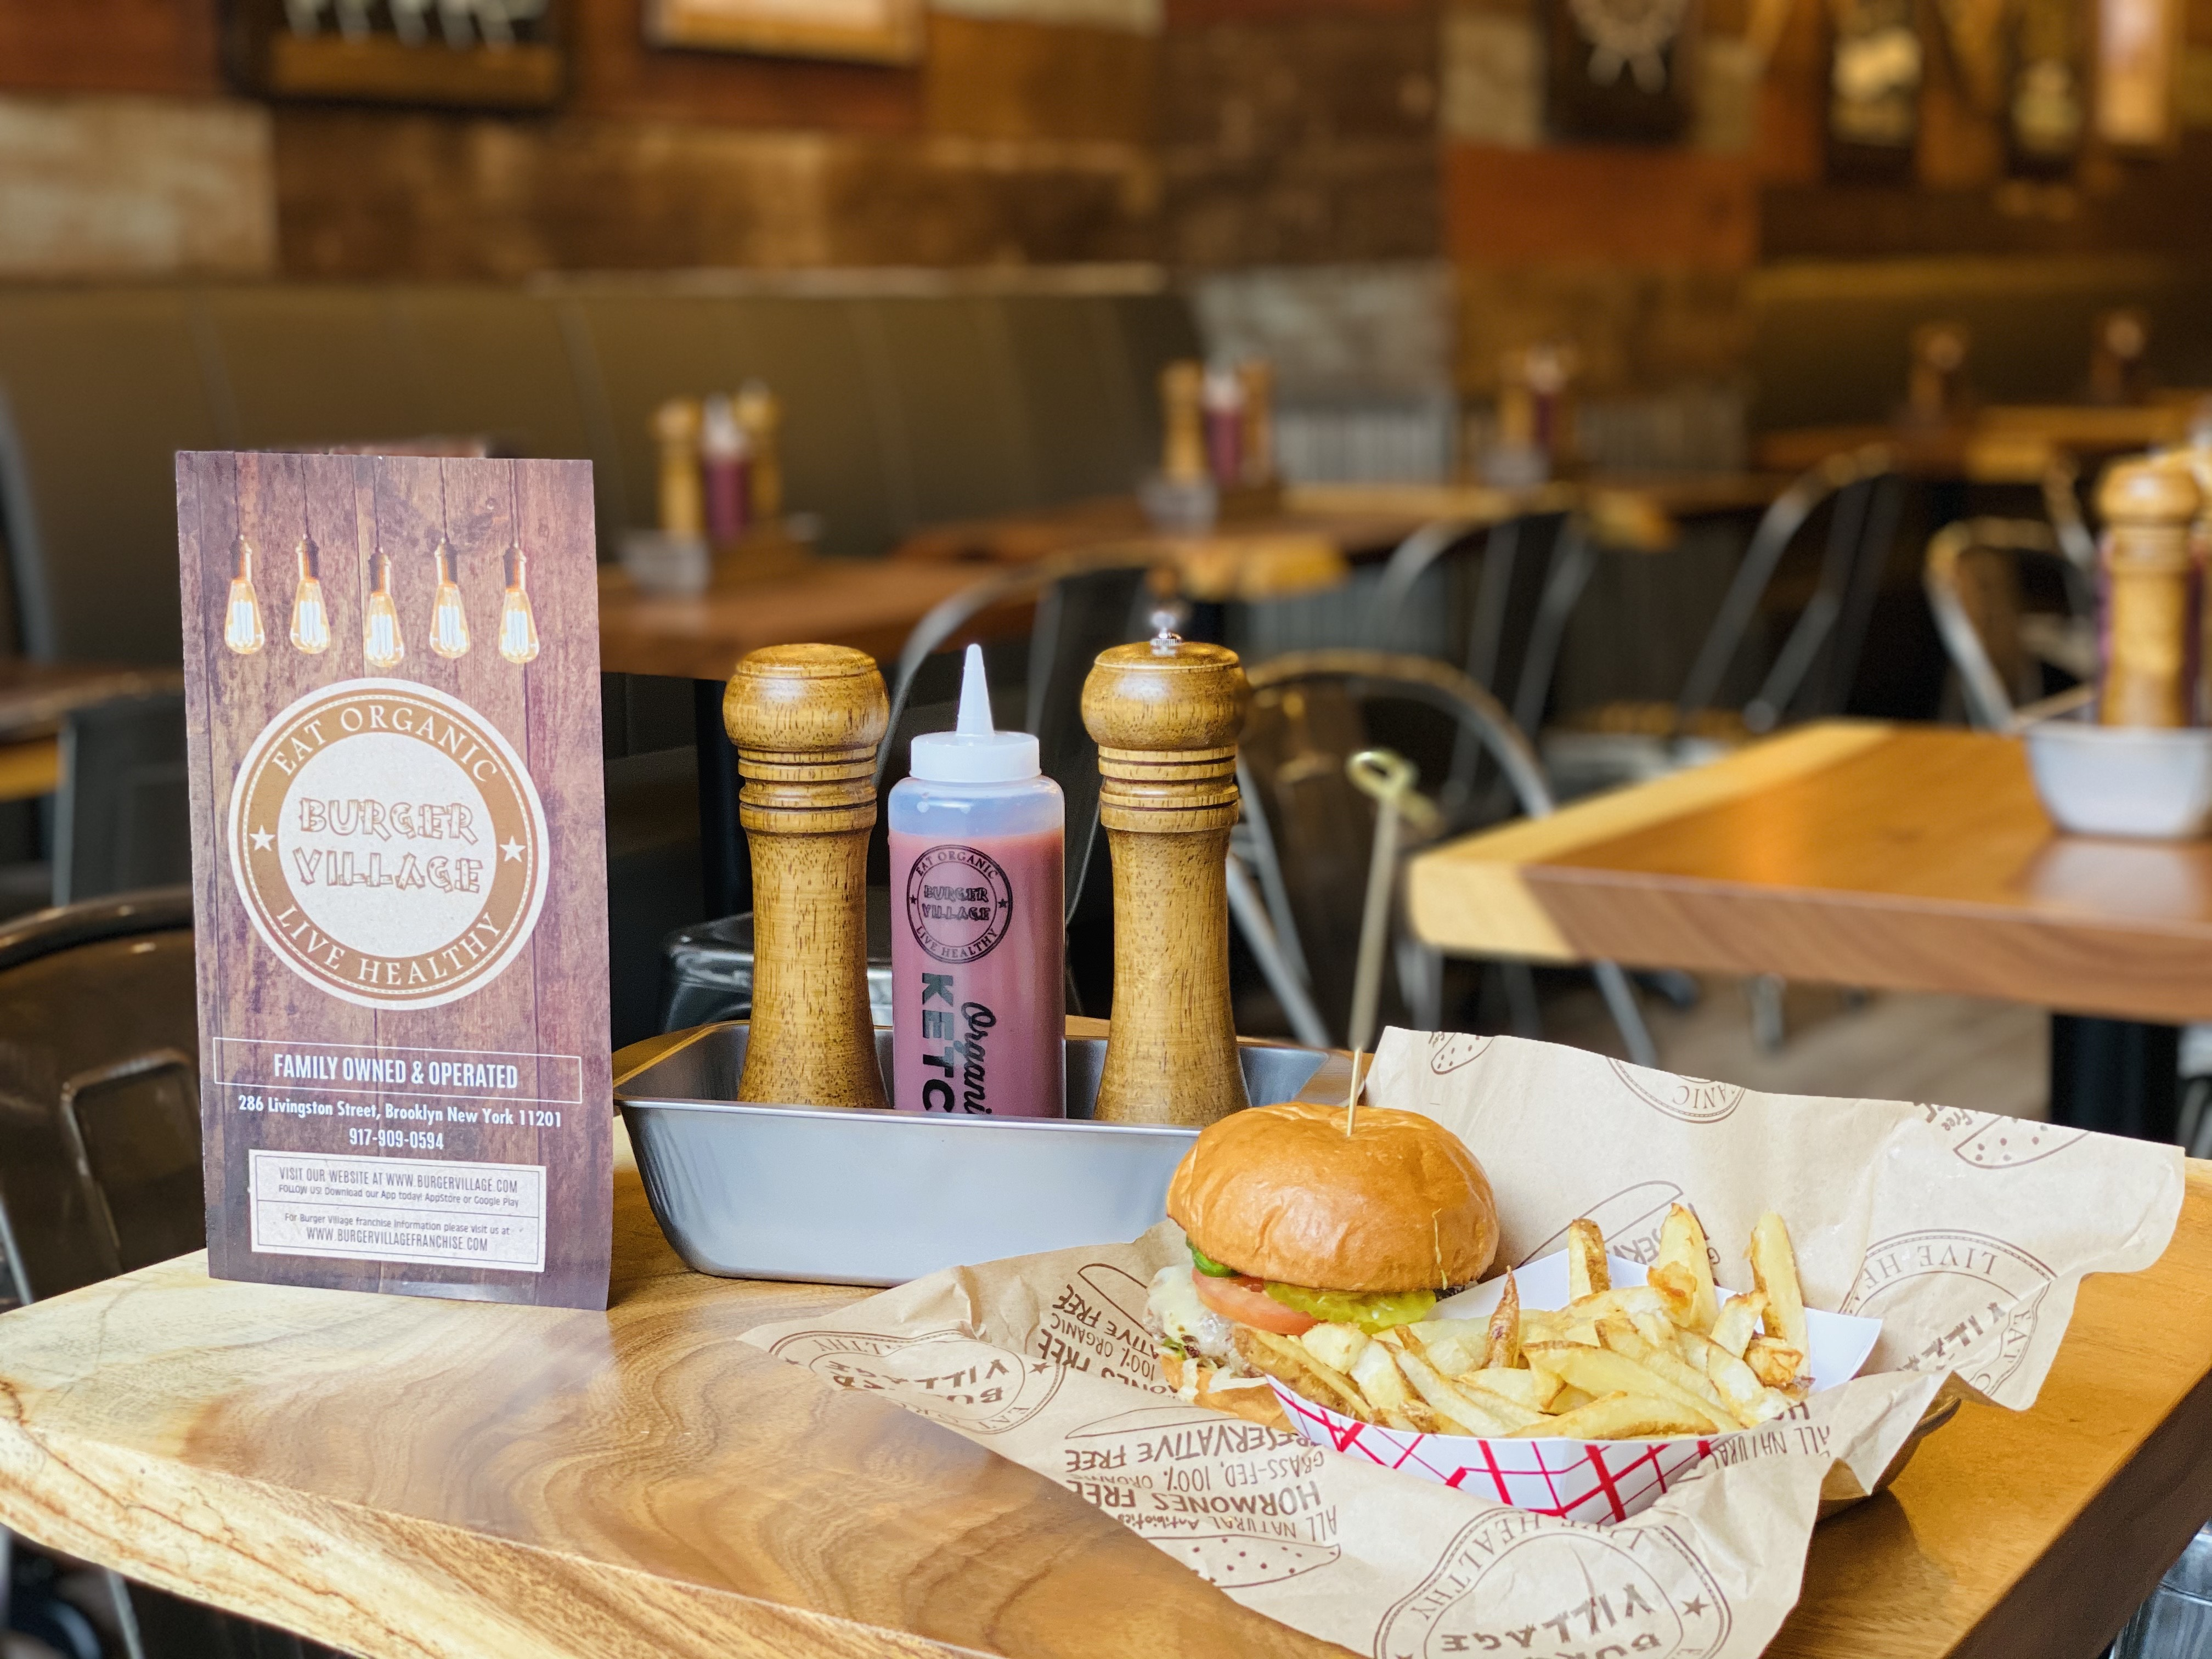 Burger Village is known for serving top-quality grass fed burgers.